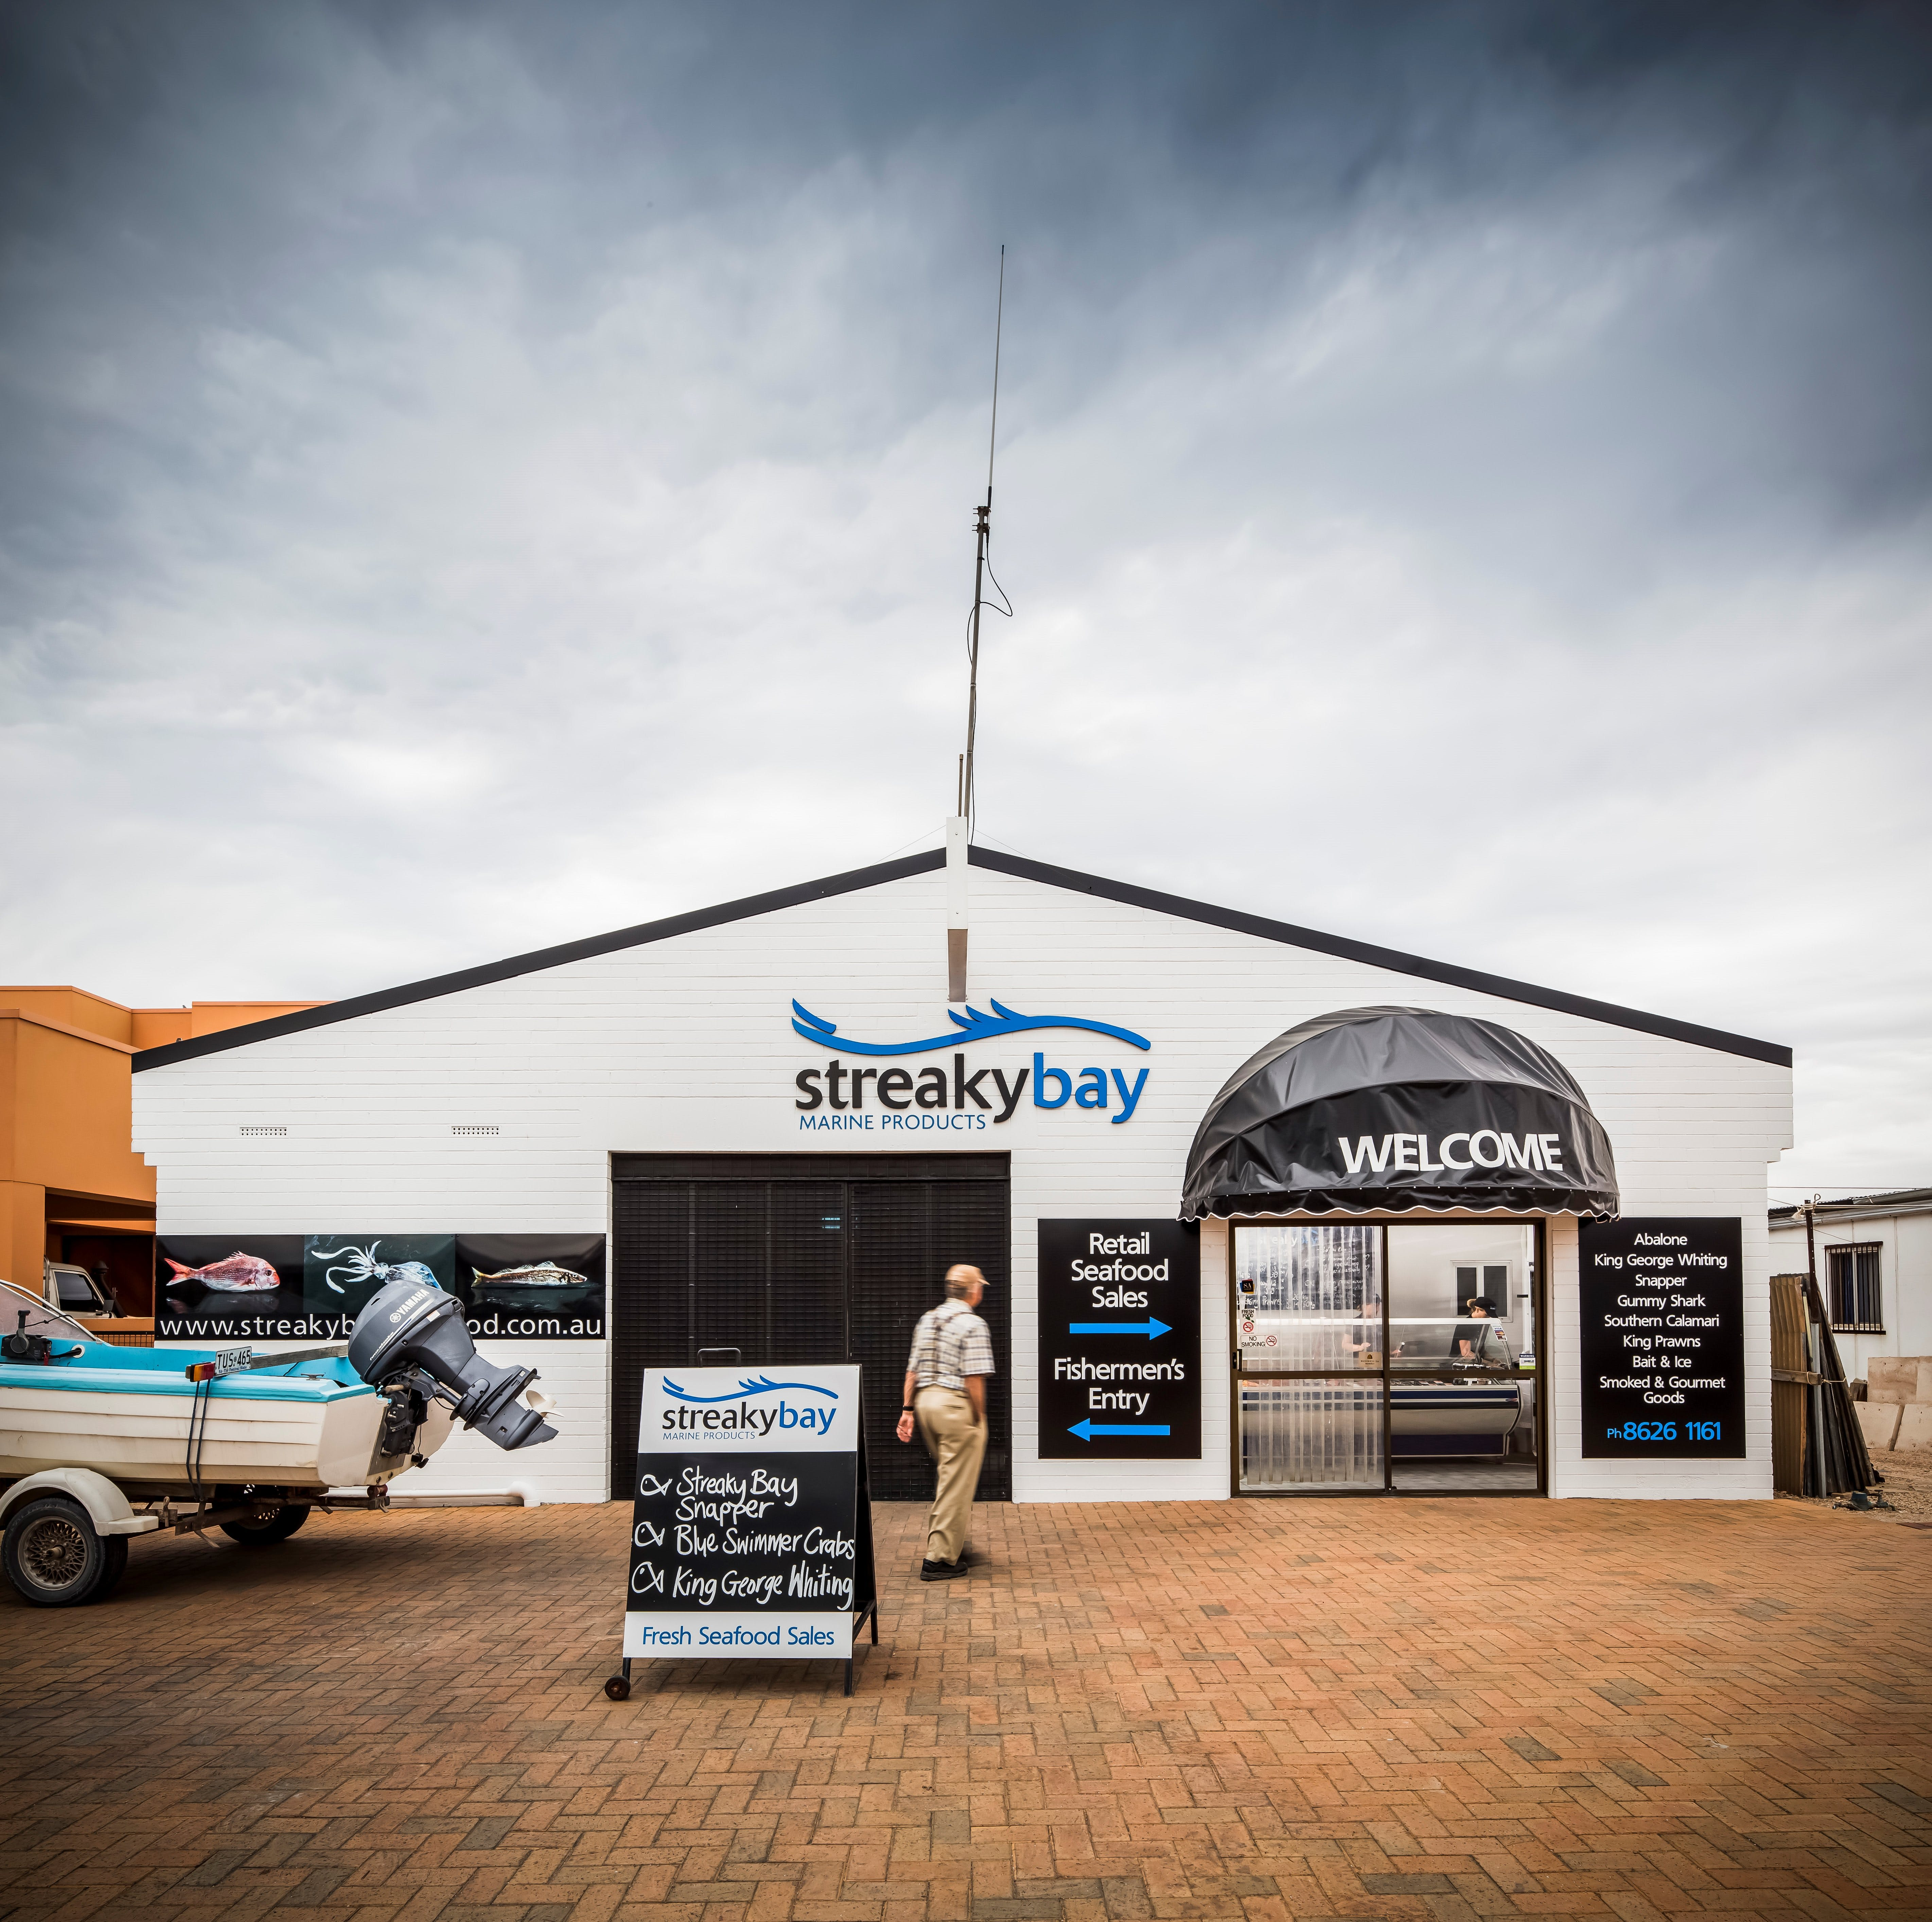 Streaky Bay Marine Products - Tourism Gold Coast